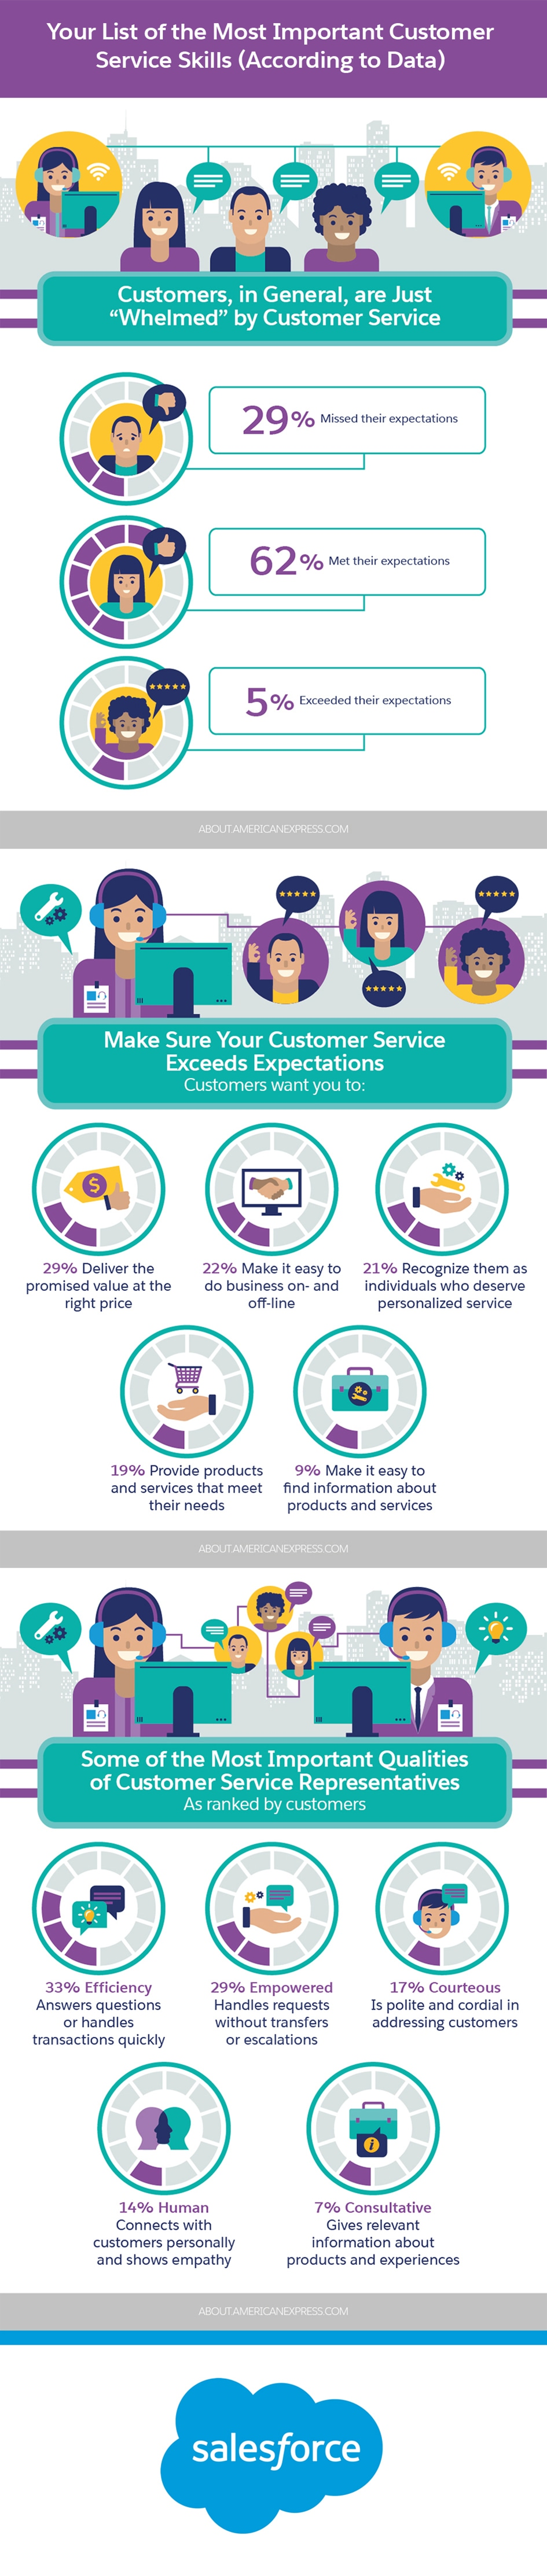 Your List of the Most Important Customer Service Skills (According to Data) Infographic